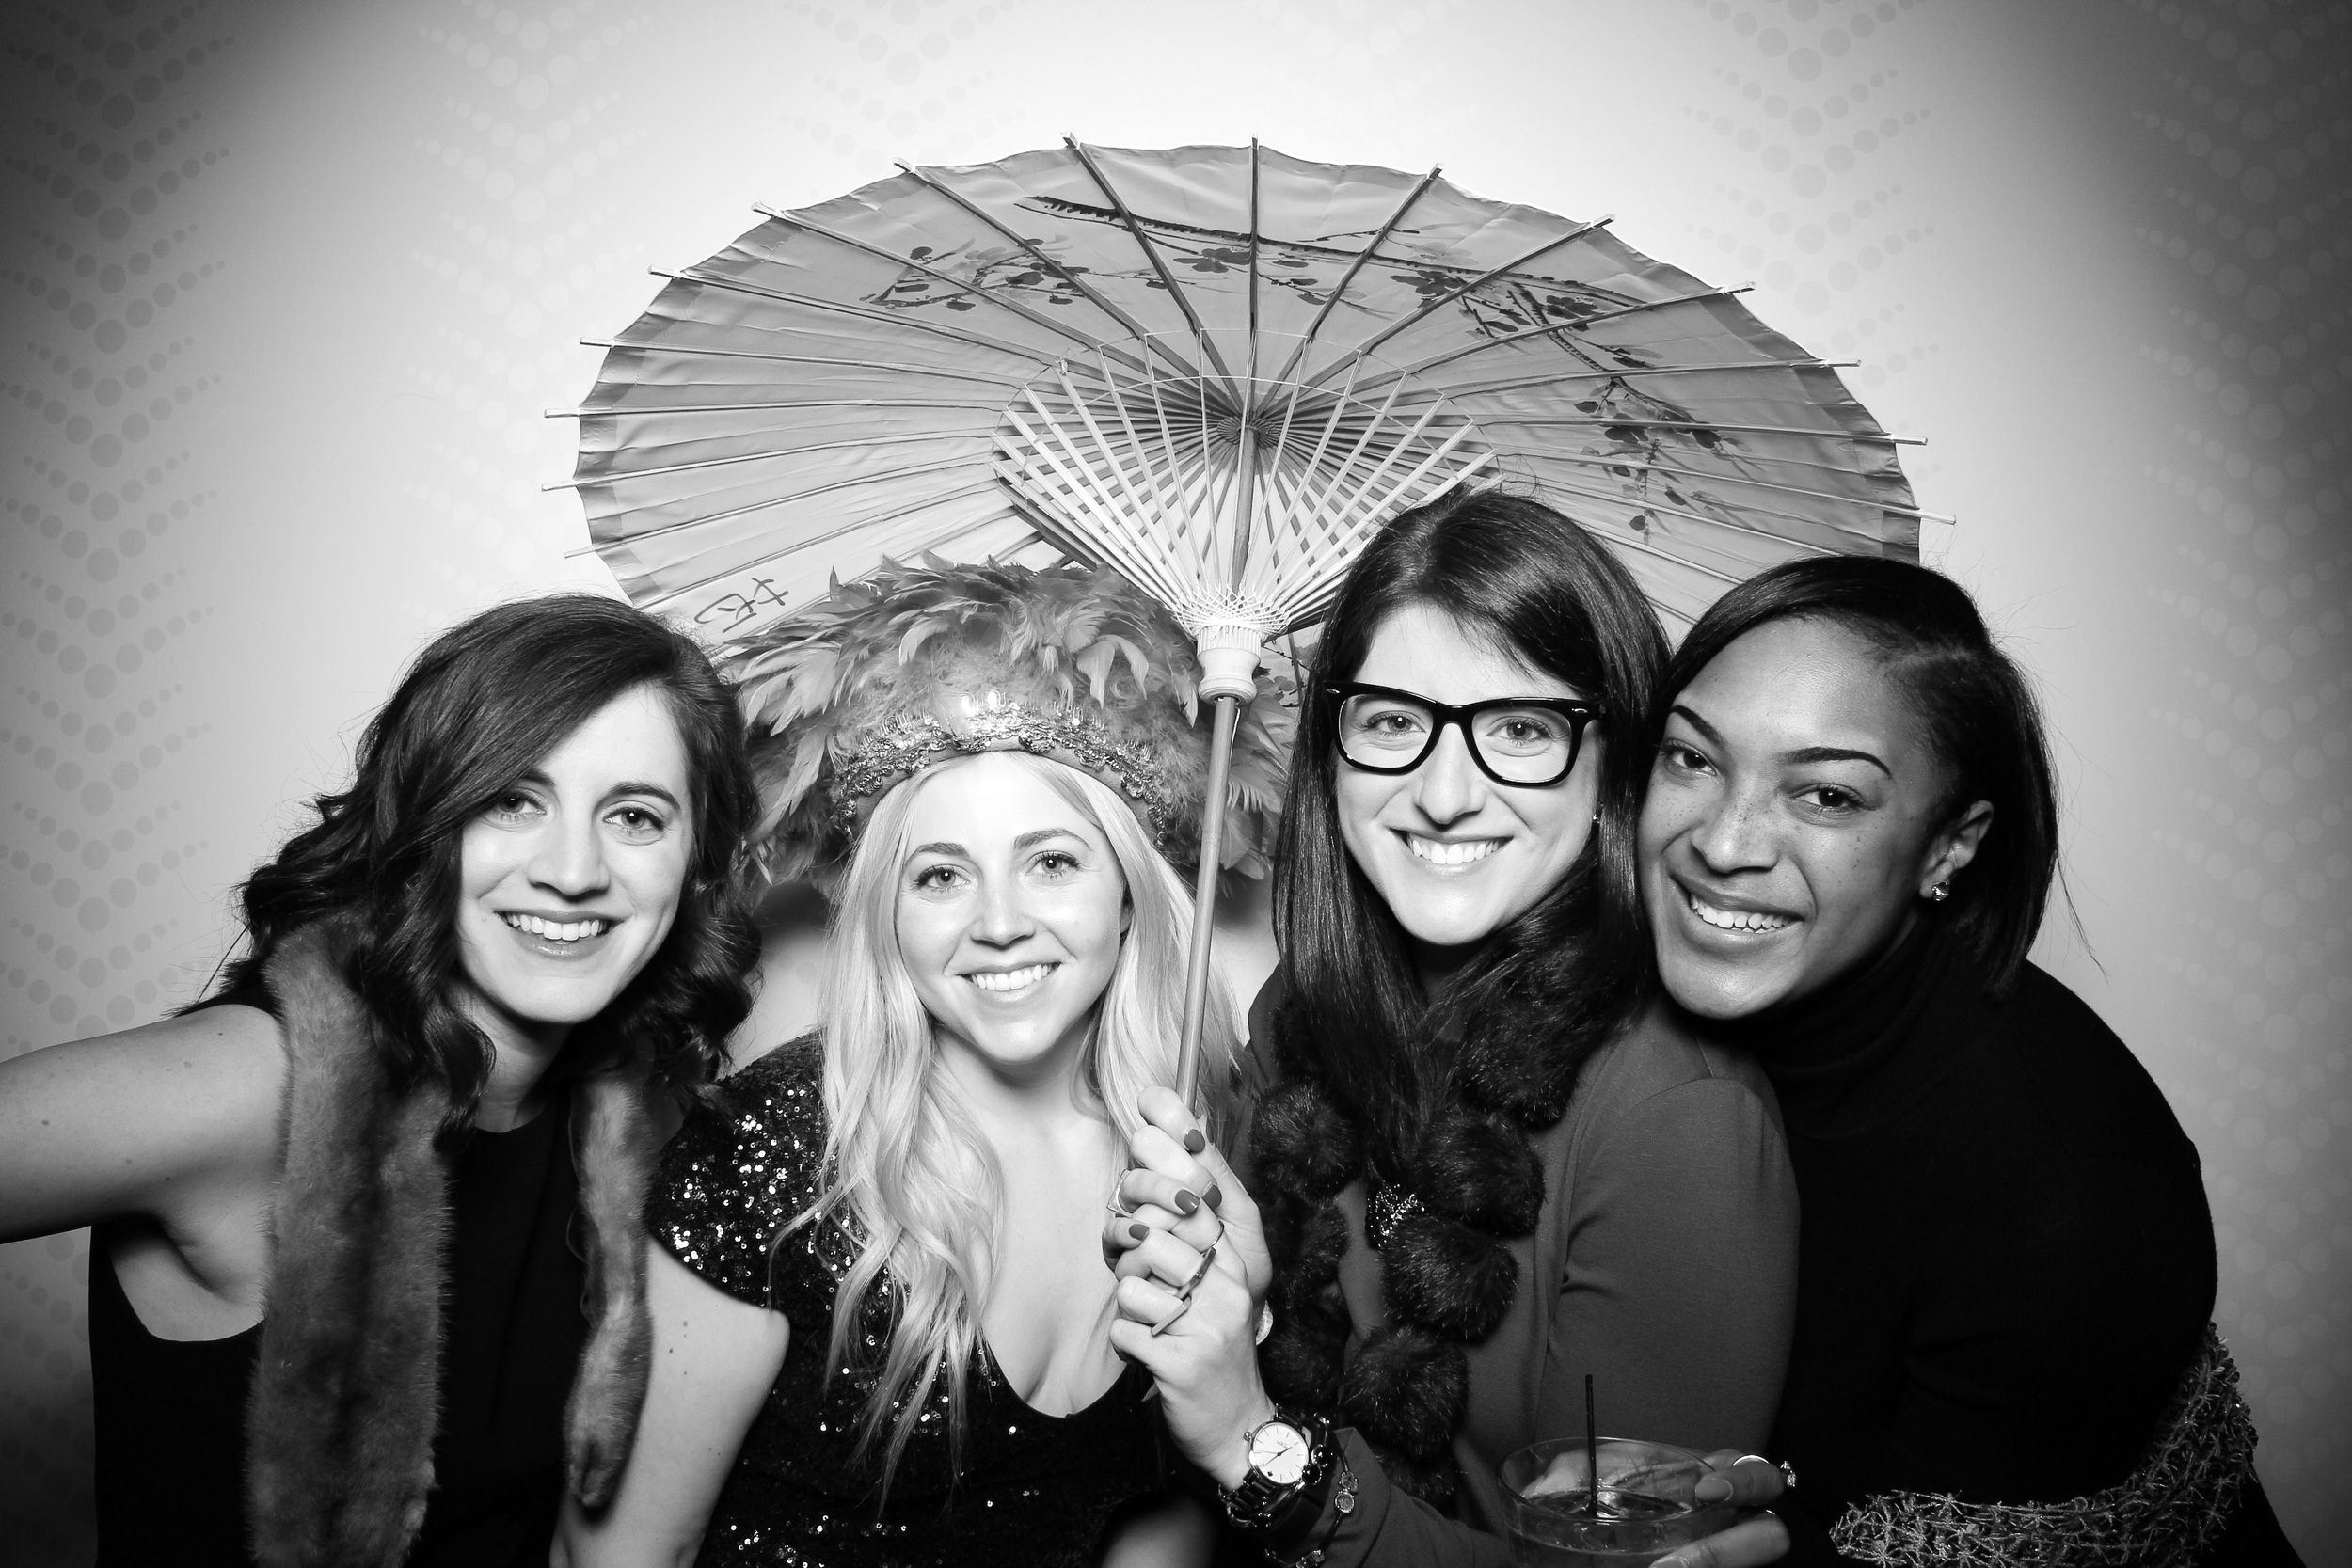 Guests use a vintage parasol photo booth prop at a company holiday party at Hotel Palomar in Chicago!